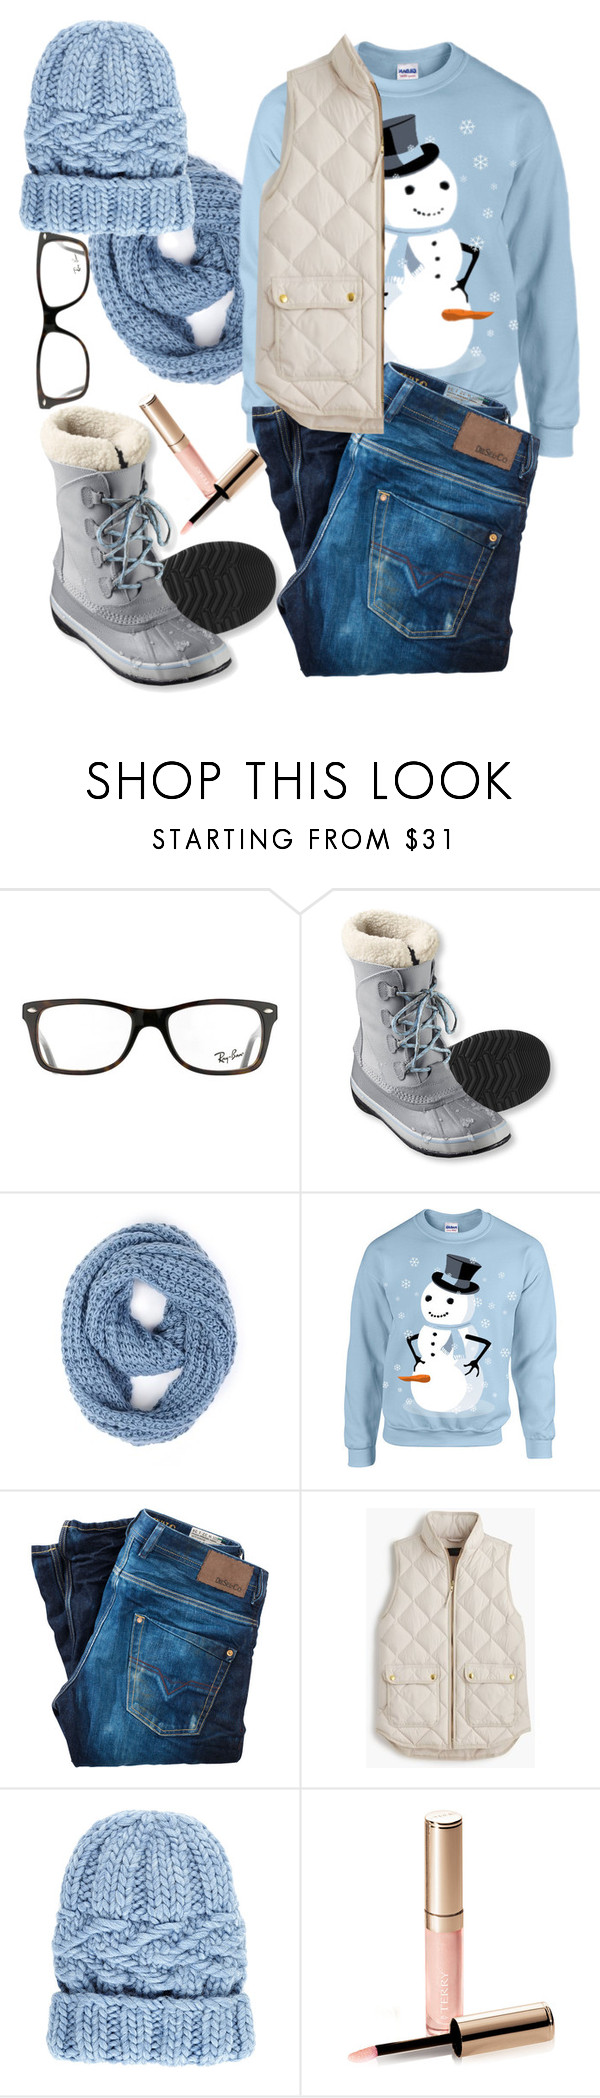 """""""Untitled #1252"""" by littledeath11 ❤ liked on Polyvore featuring Ray-Ban, L.L.Bean, Paula Bianco, Diesel, J.Crew, Eugenia Kim and By Terry"""